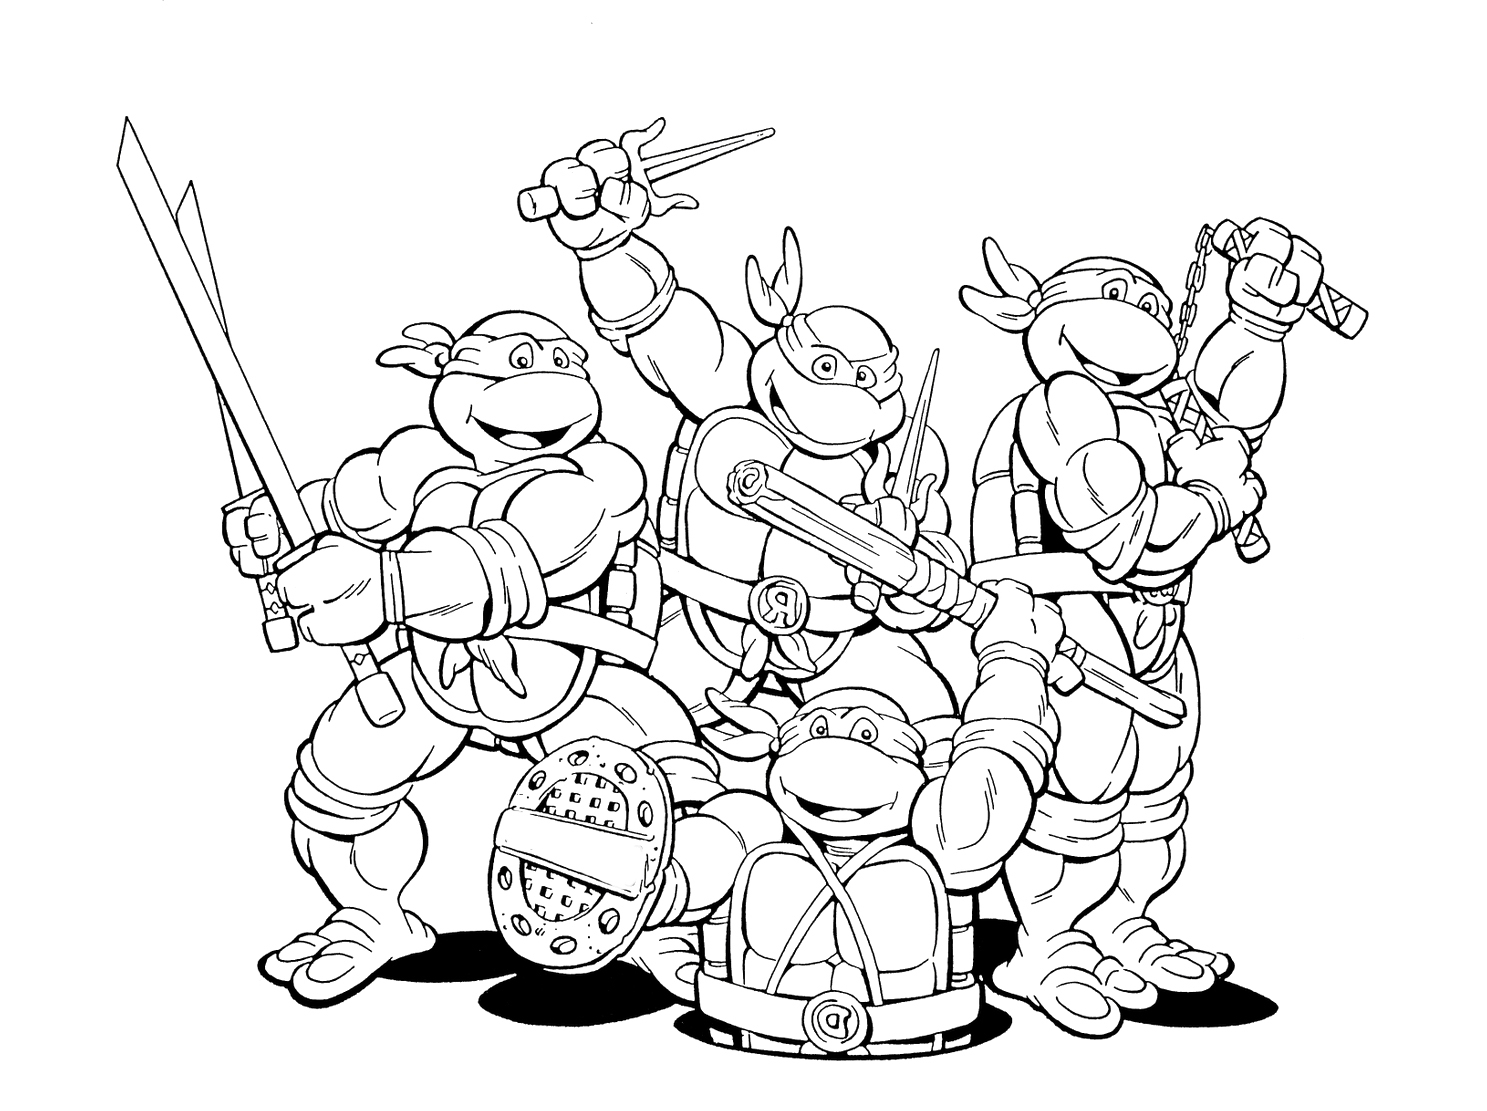 1487x1111 Ninja Turtles Movie Coloring Pages Collection